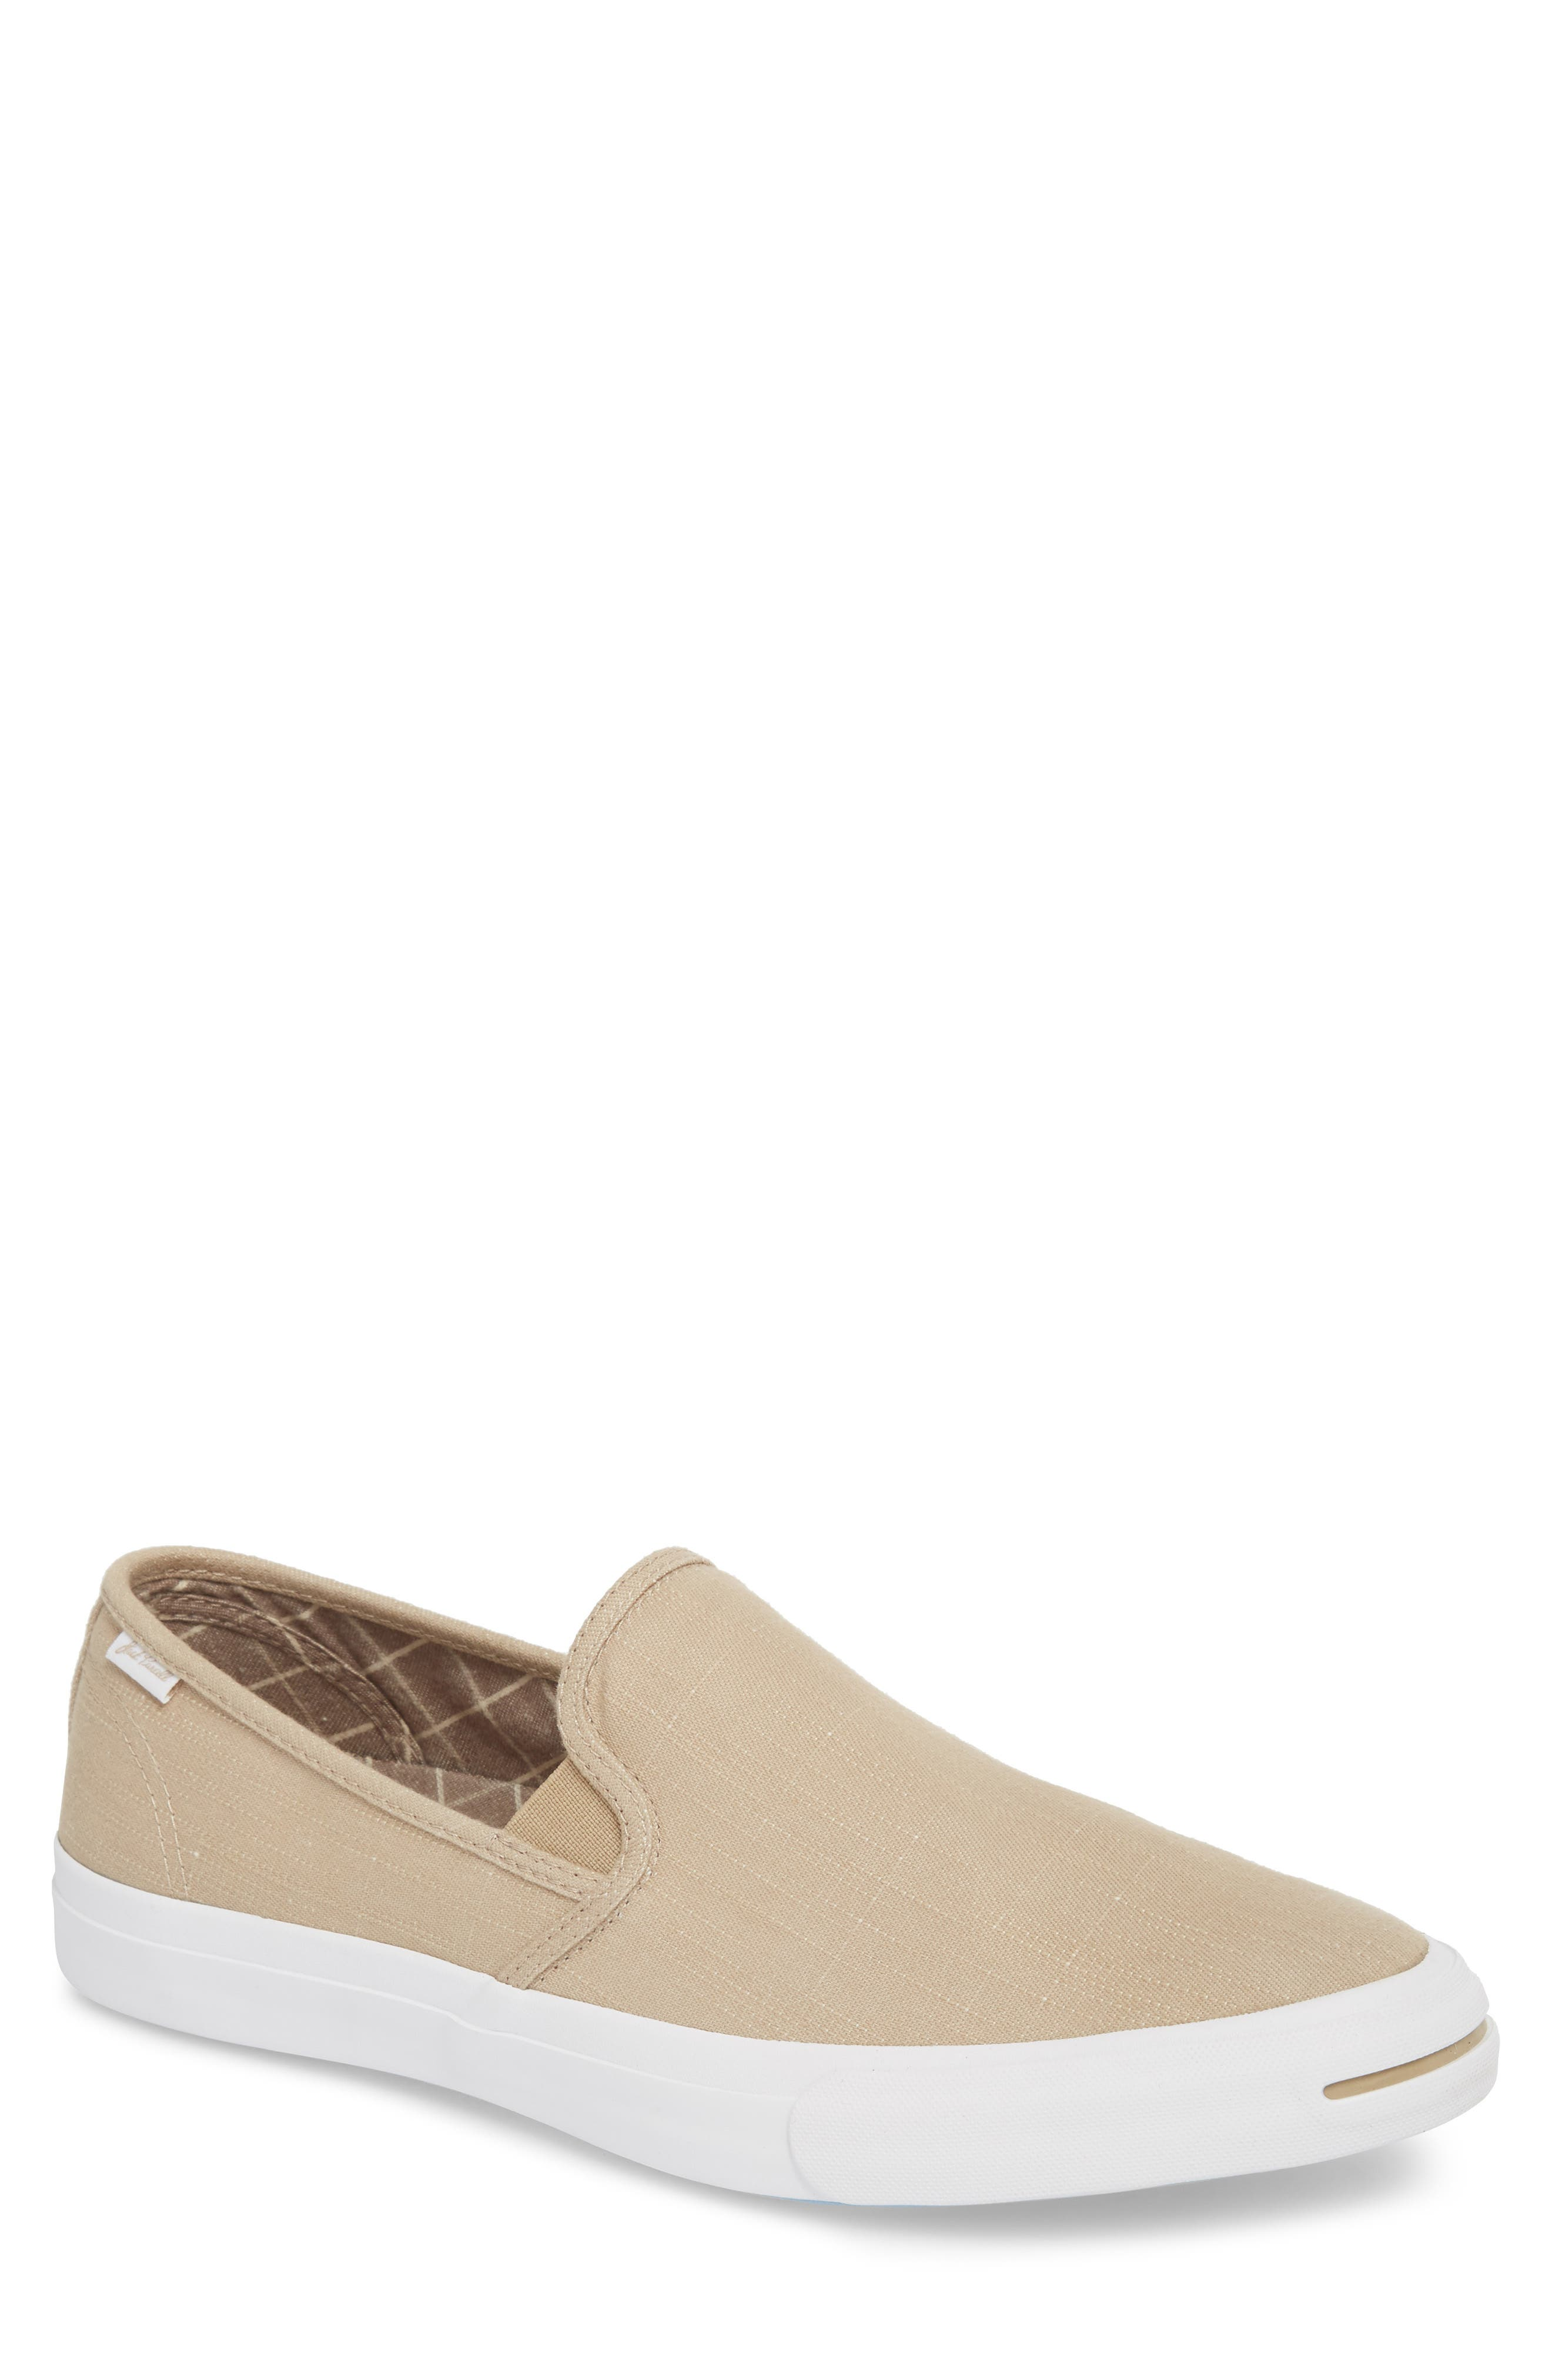 Converse Jack Purcell Low Profile Slip-On Sneaker (Men)